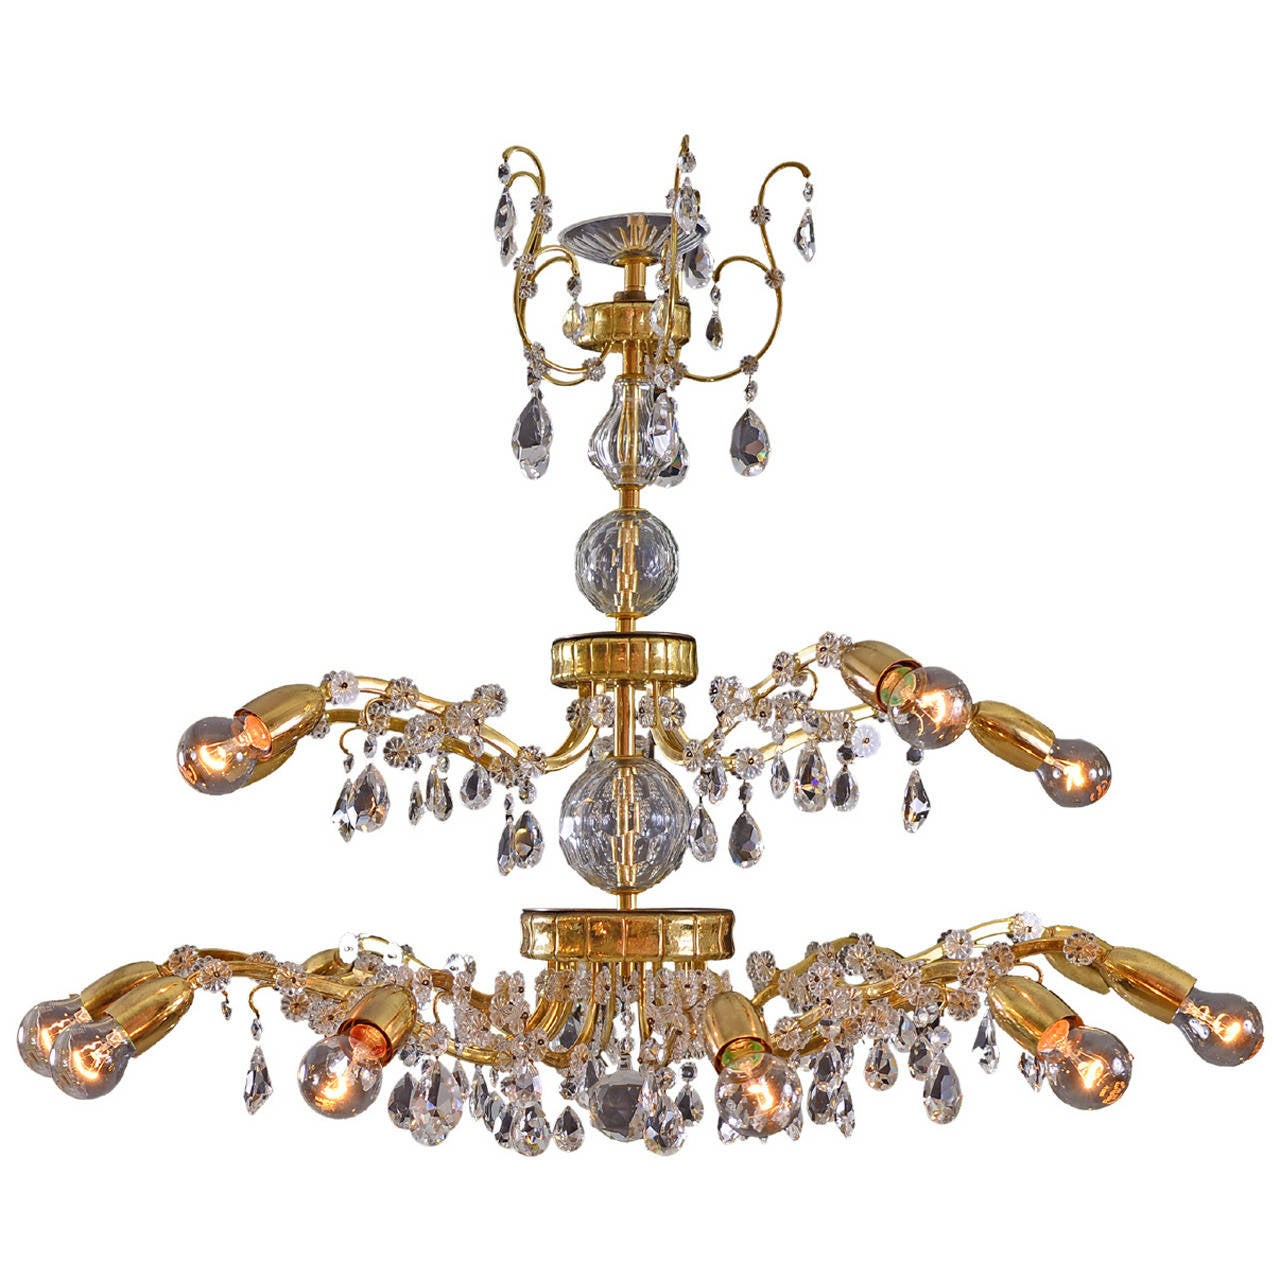 Magnificent Lobmeyr Chandelier 1950 1960 For Sale At 1stdibs